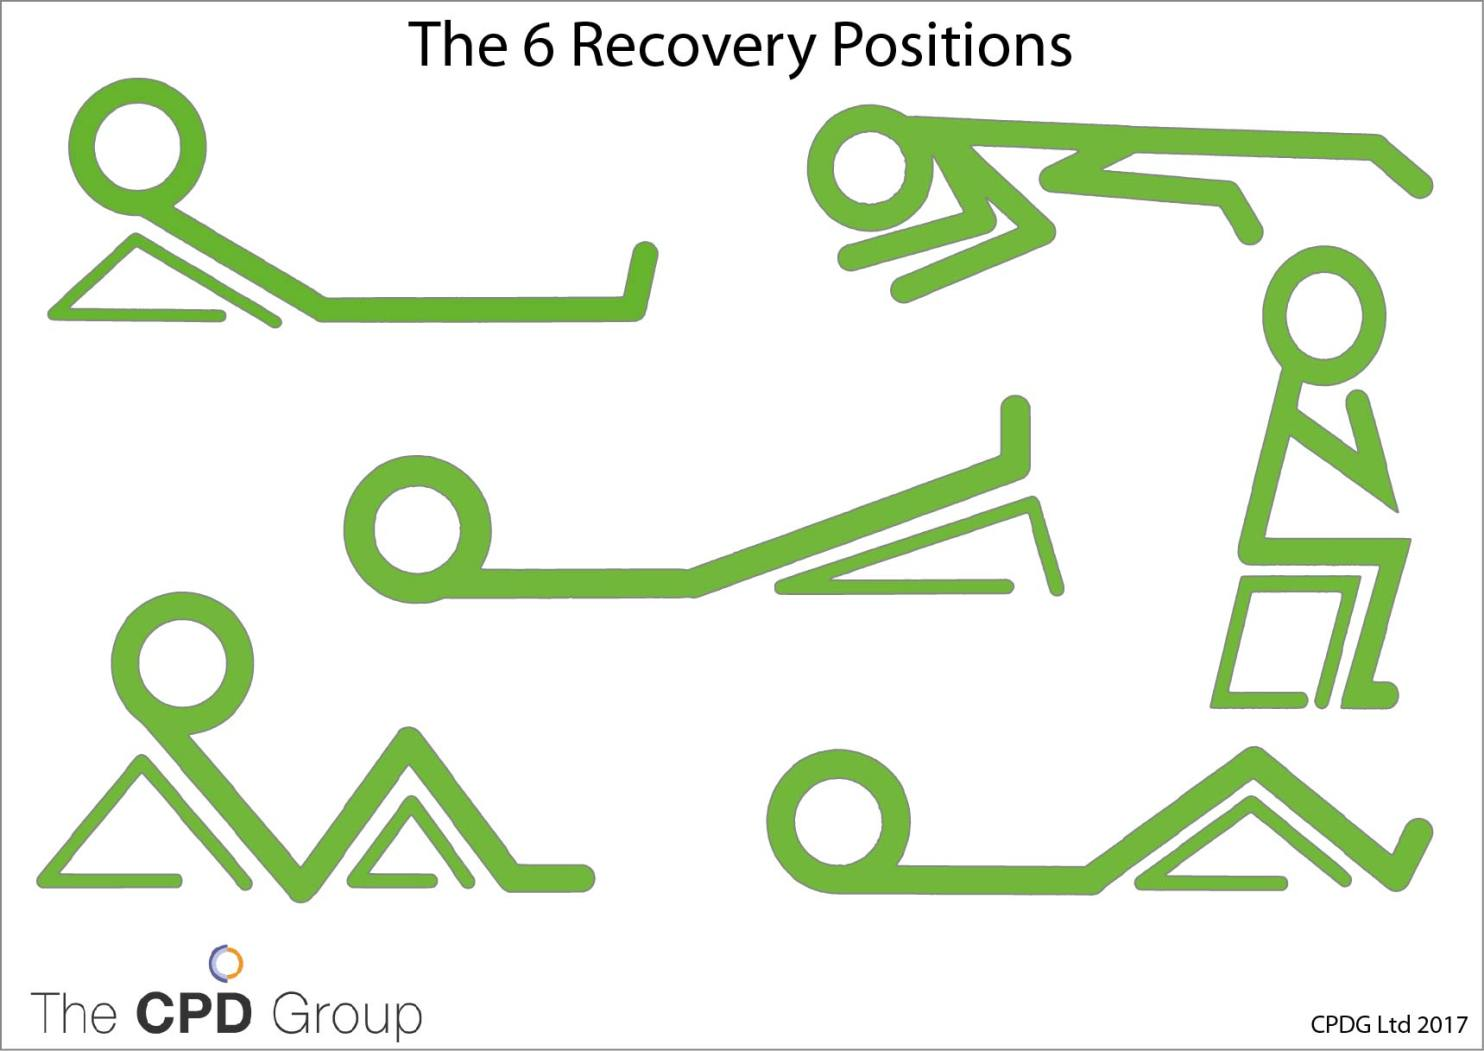 CPDG 6 recovery positions